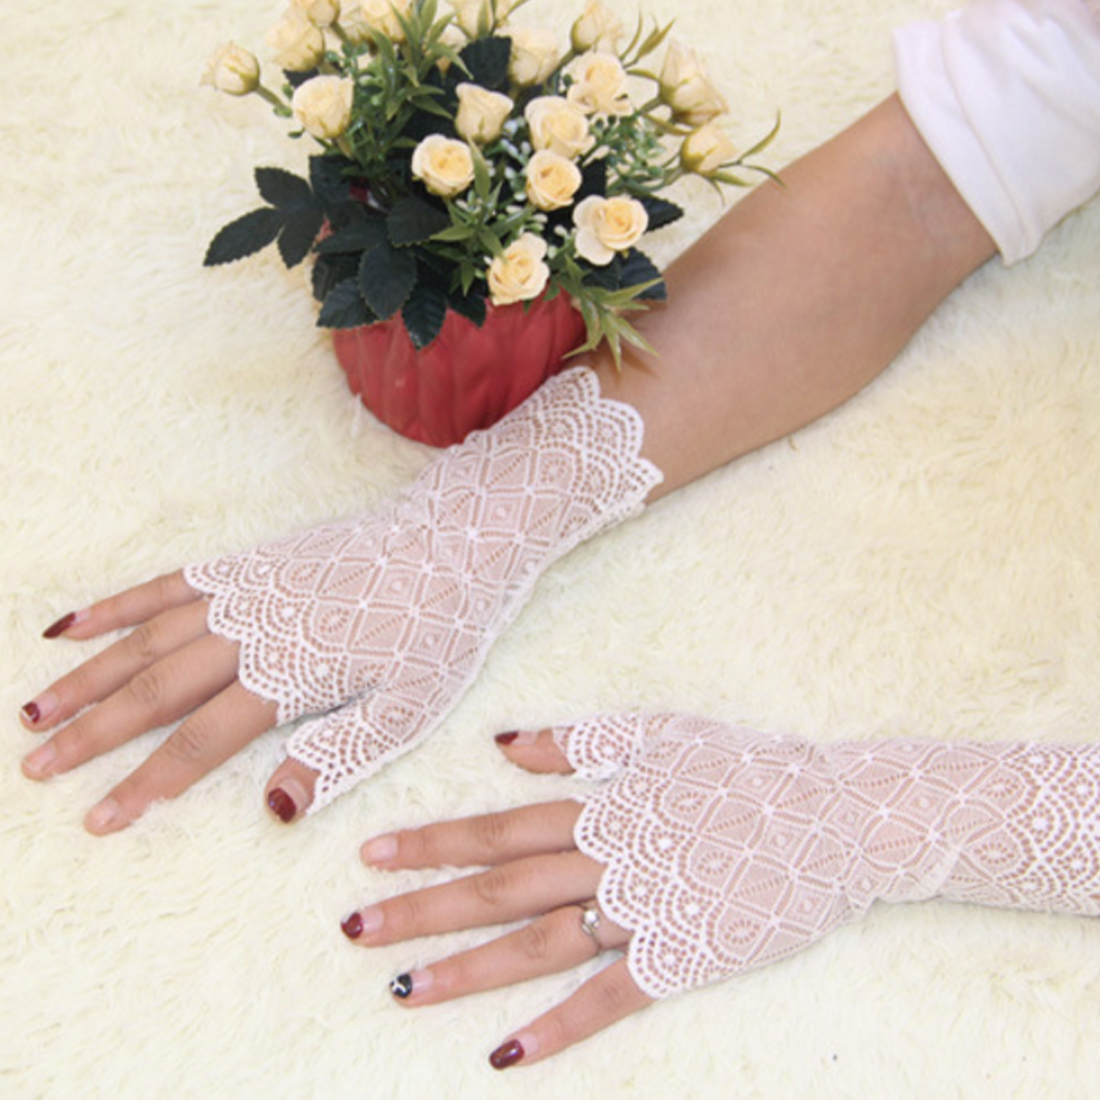 Mens leather driving gloves melbourne - Spring And Summer Womens Sunscreen Short Gloves Fashion Sexy Fingerless Lace Driving Gloves Spring And Summer